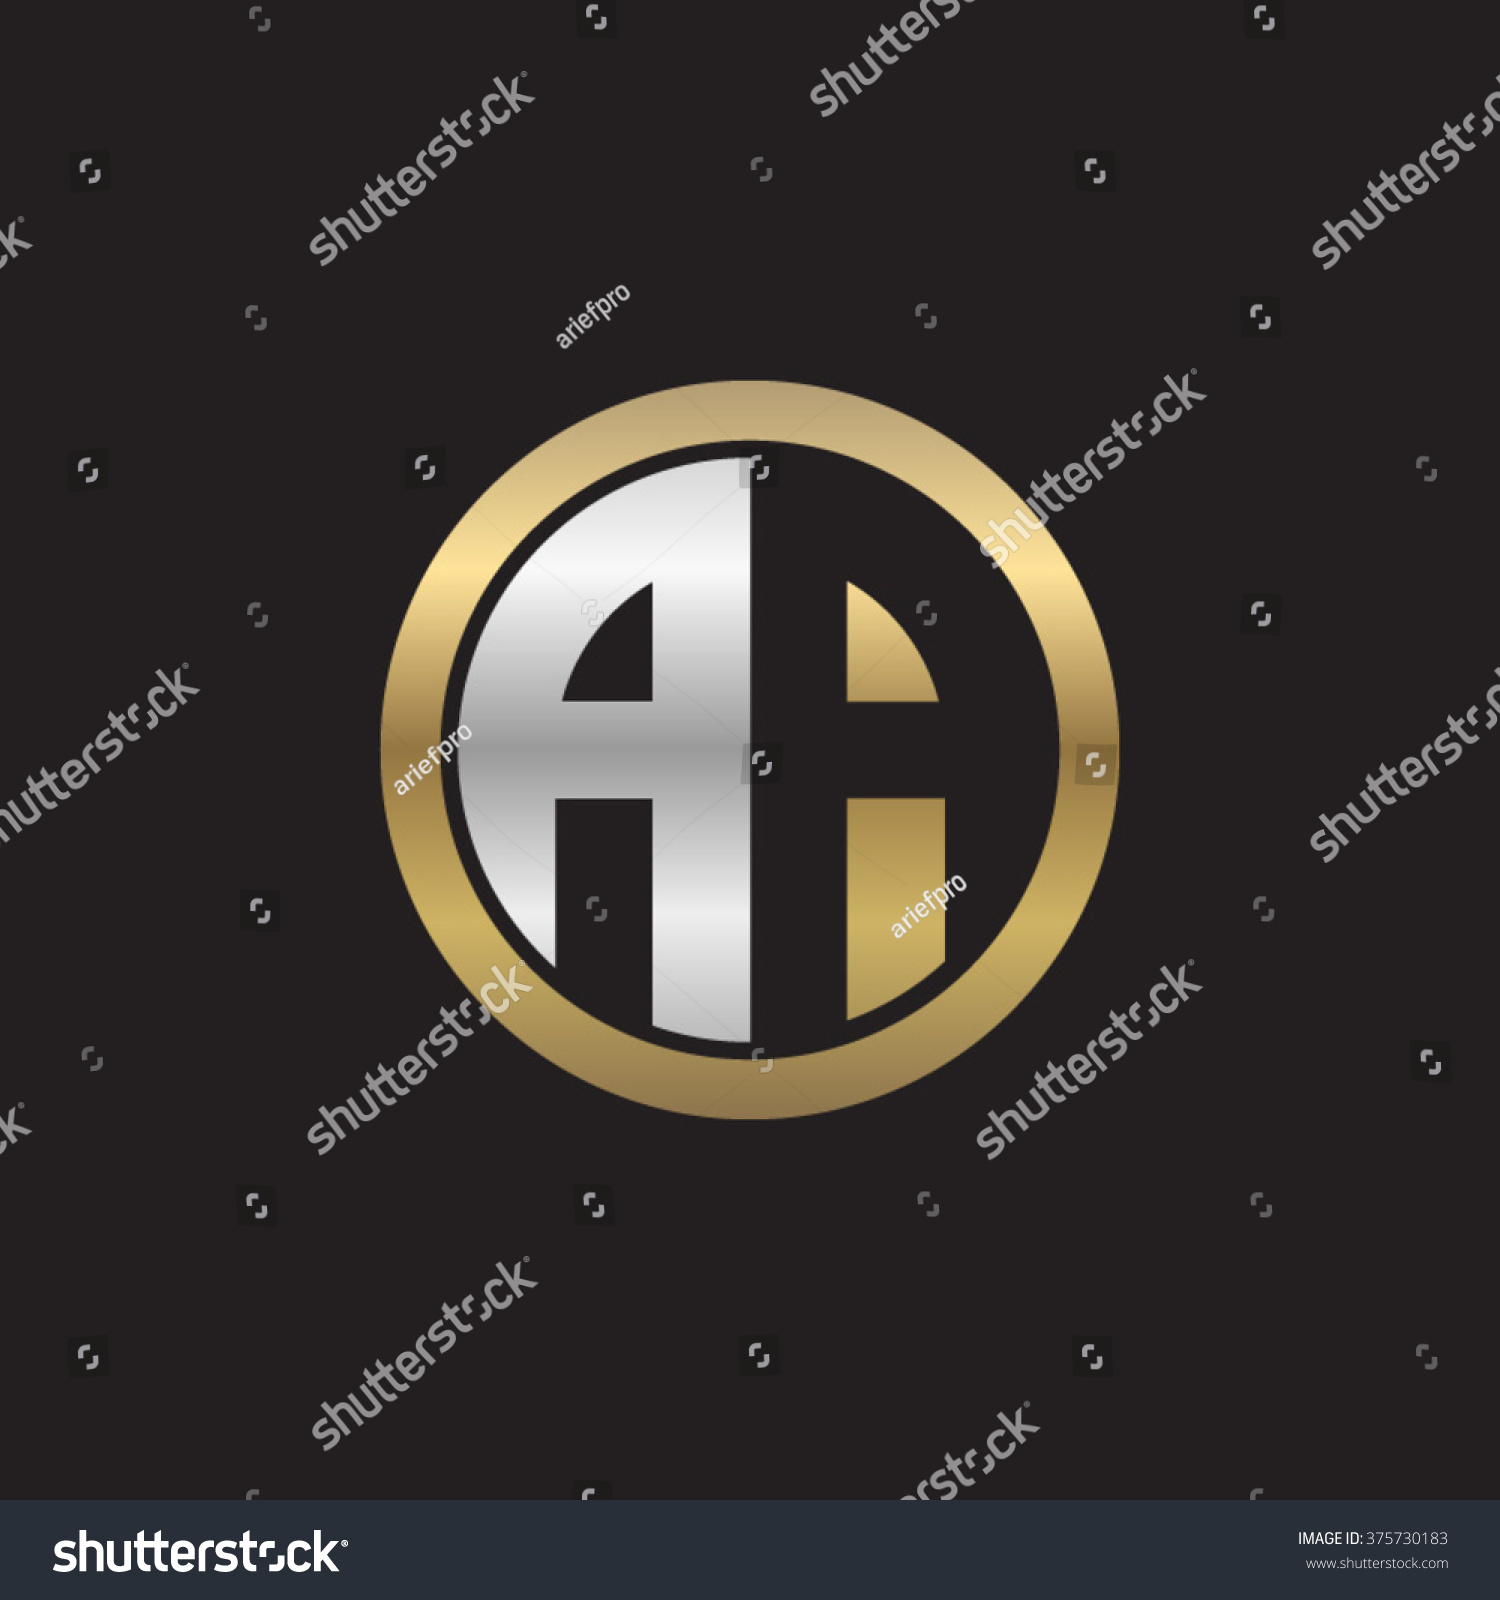 Identify This Aa Logo It That Aa Or Something Else